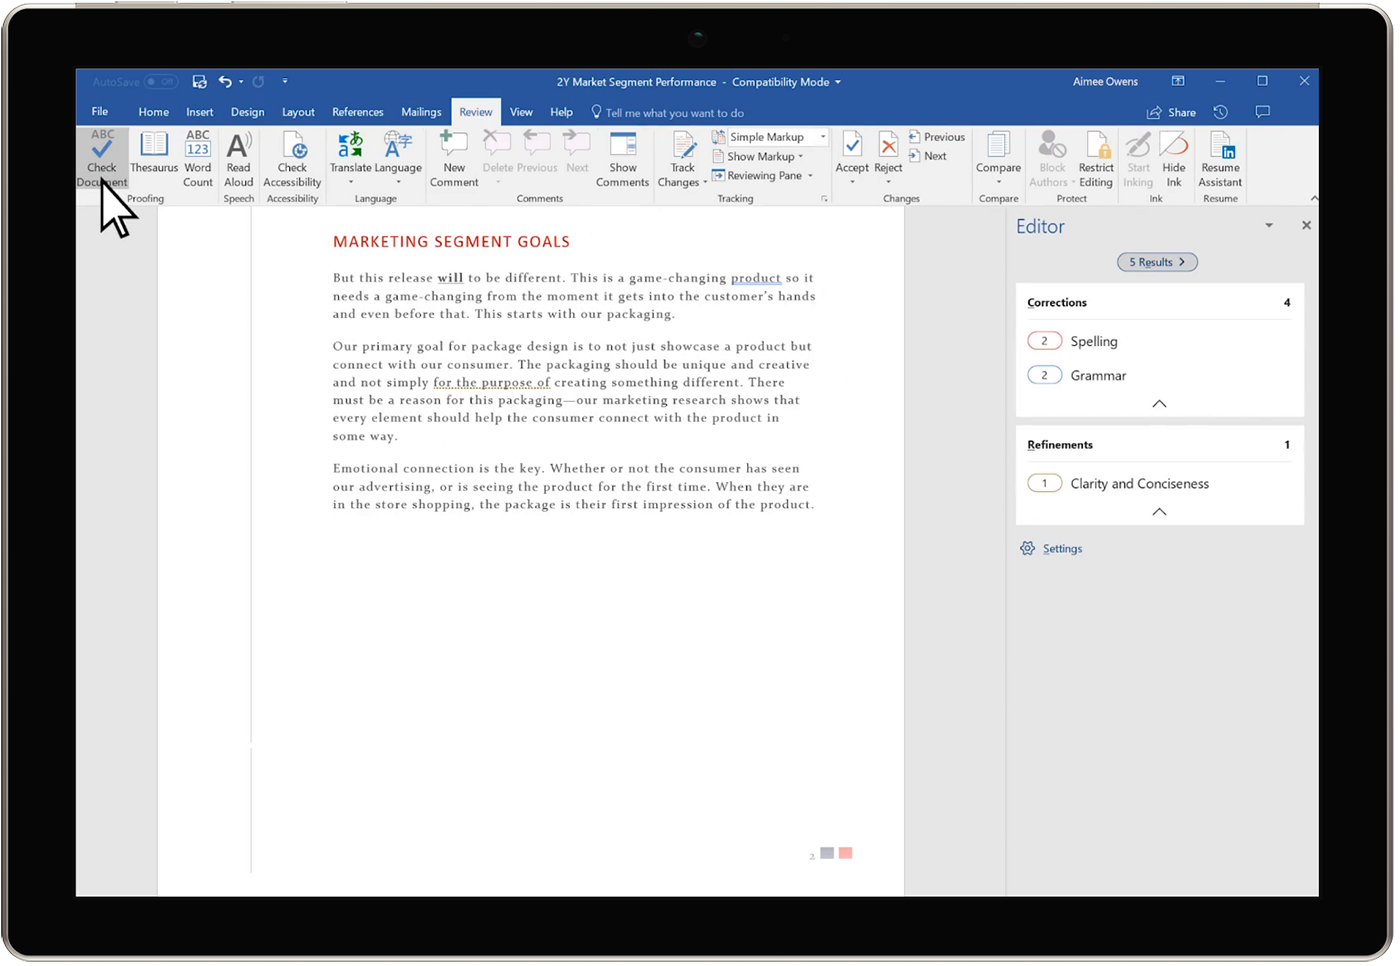 Image of the Editor Overview pane in a Word document.